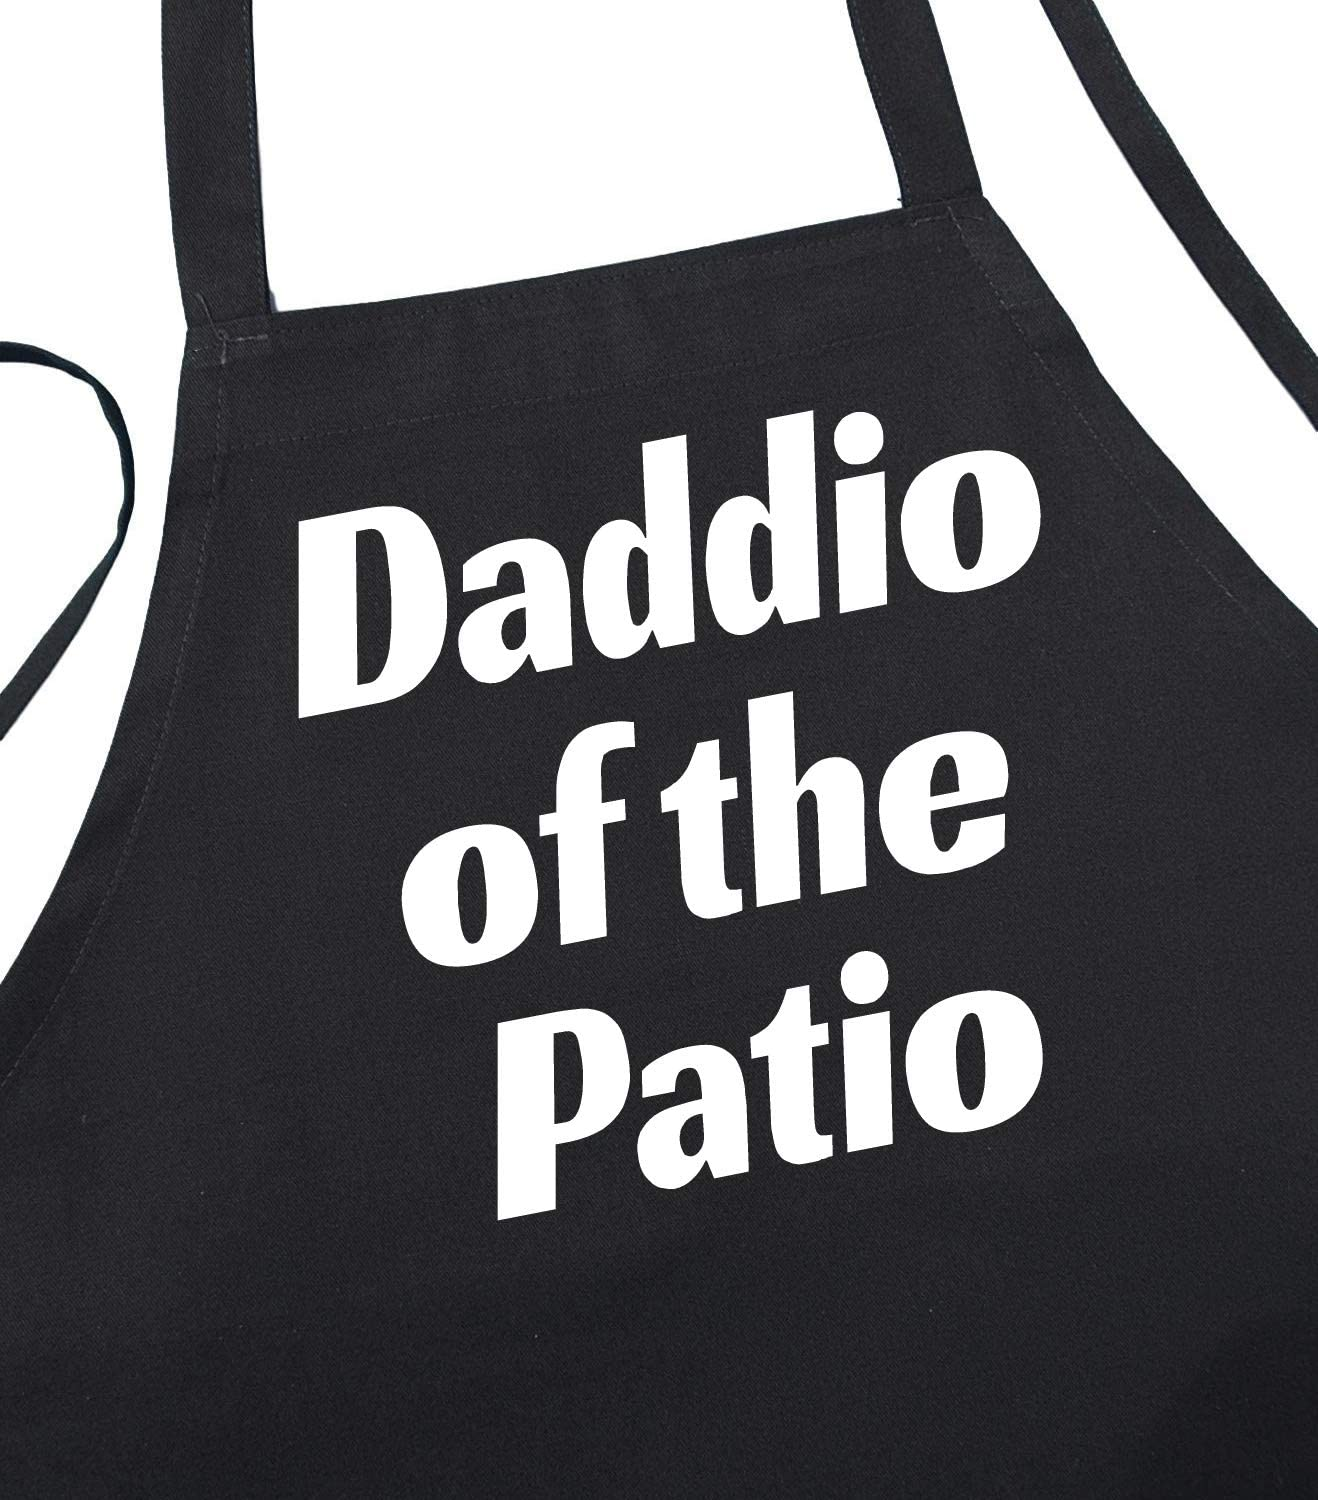 Daddio of The Patio BBQ Chef 1 year warranty Aprons famous Fit Size for Men Black One